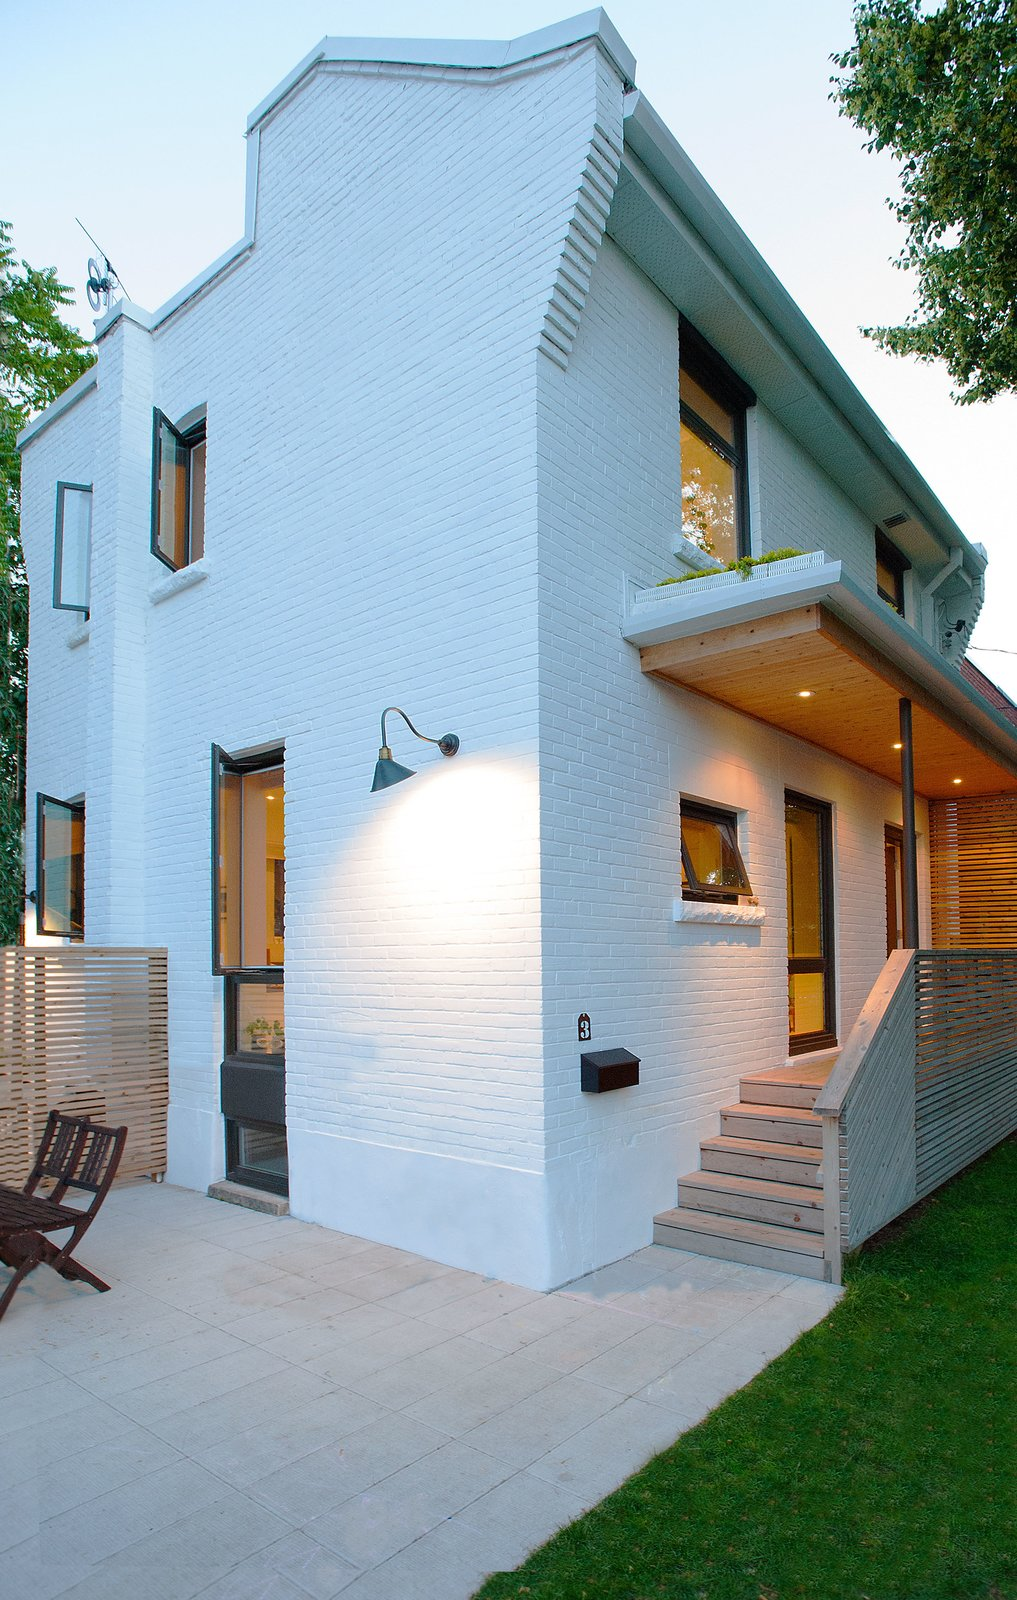 Outdoor, Front Yard, Side Yard, Grass, Horizontal Fences, Wall, and Wood Fences, Wall Our House - Exterior  Our House by Solares Architecture